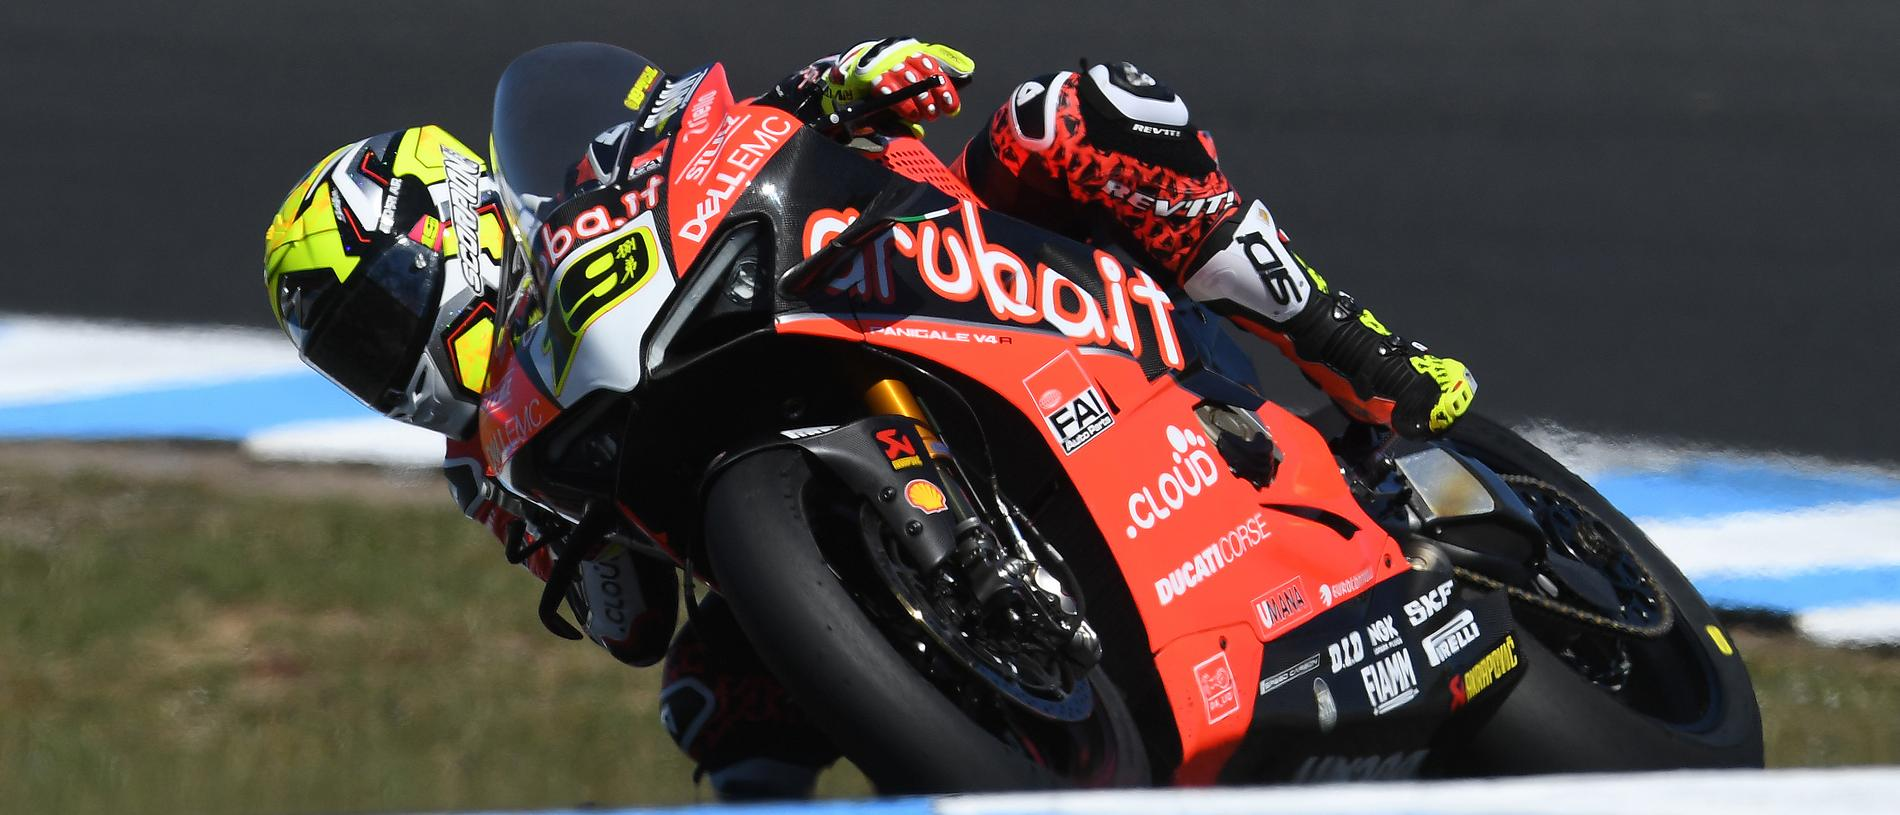 Alvaro Bautista of Spain is seen in action during race 1 on day 2 of the 2019 MOTUL FIM Superbike World Championship at Phillip Island Grand Prix Circuit on Phillip Island, Saturday, February 23, 2019. (AAP Image/Julian Smith) NO ARCHIVING, EDITORIAL USE ONLY